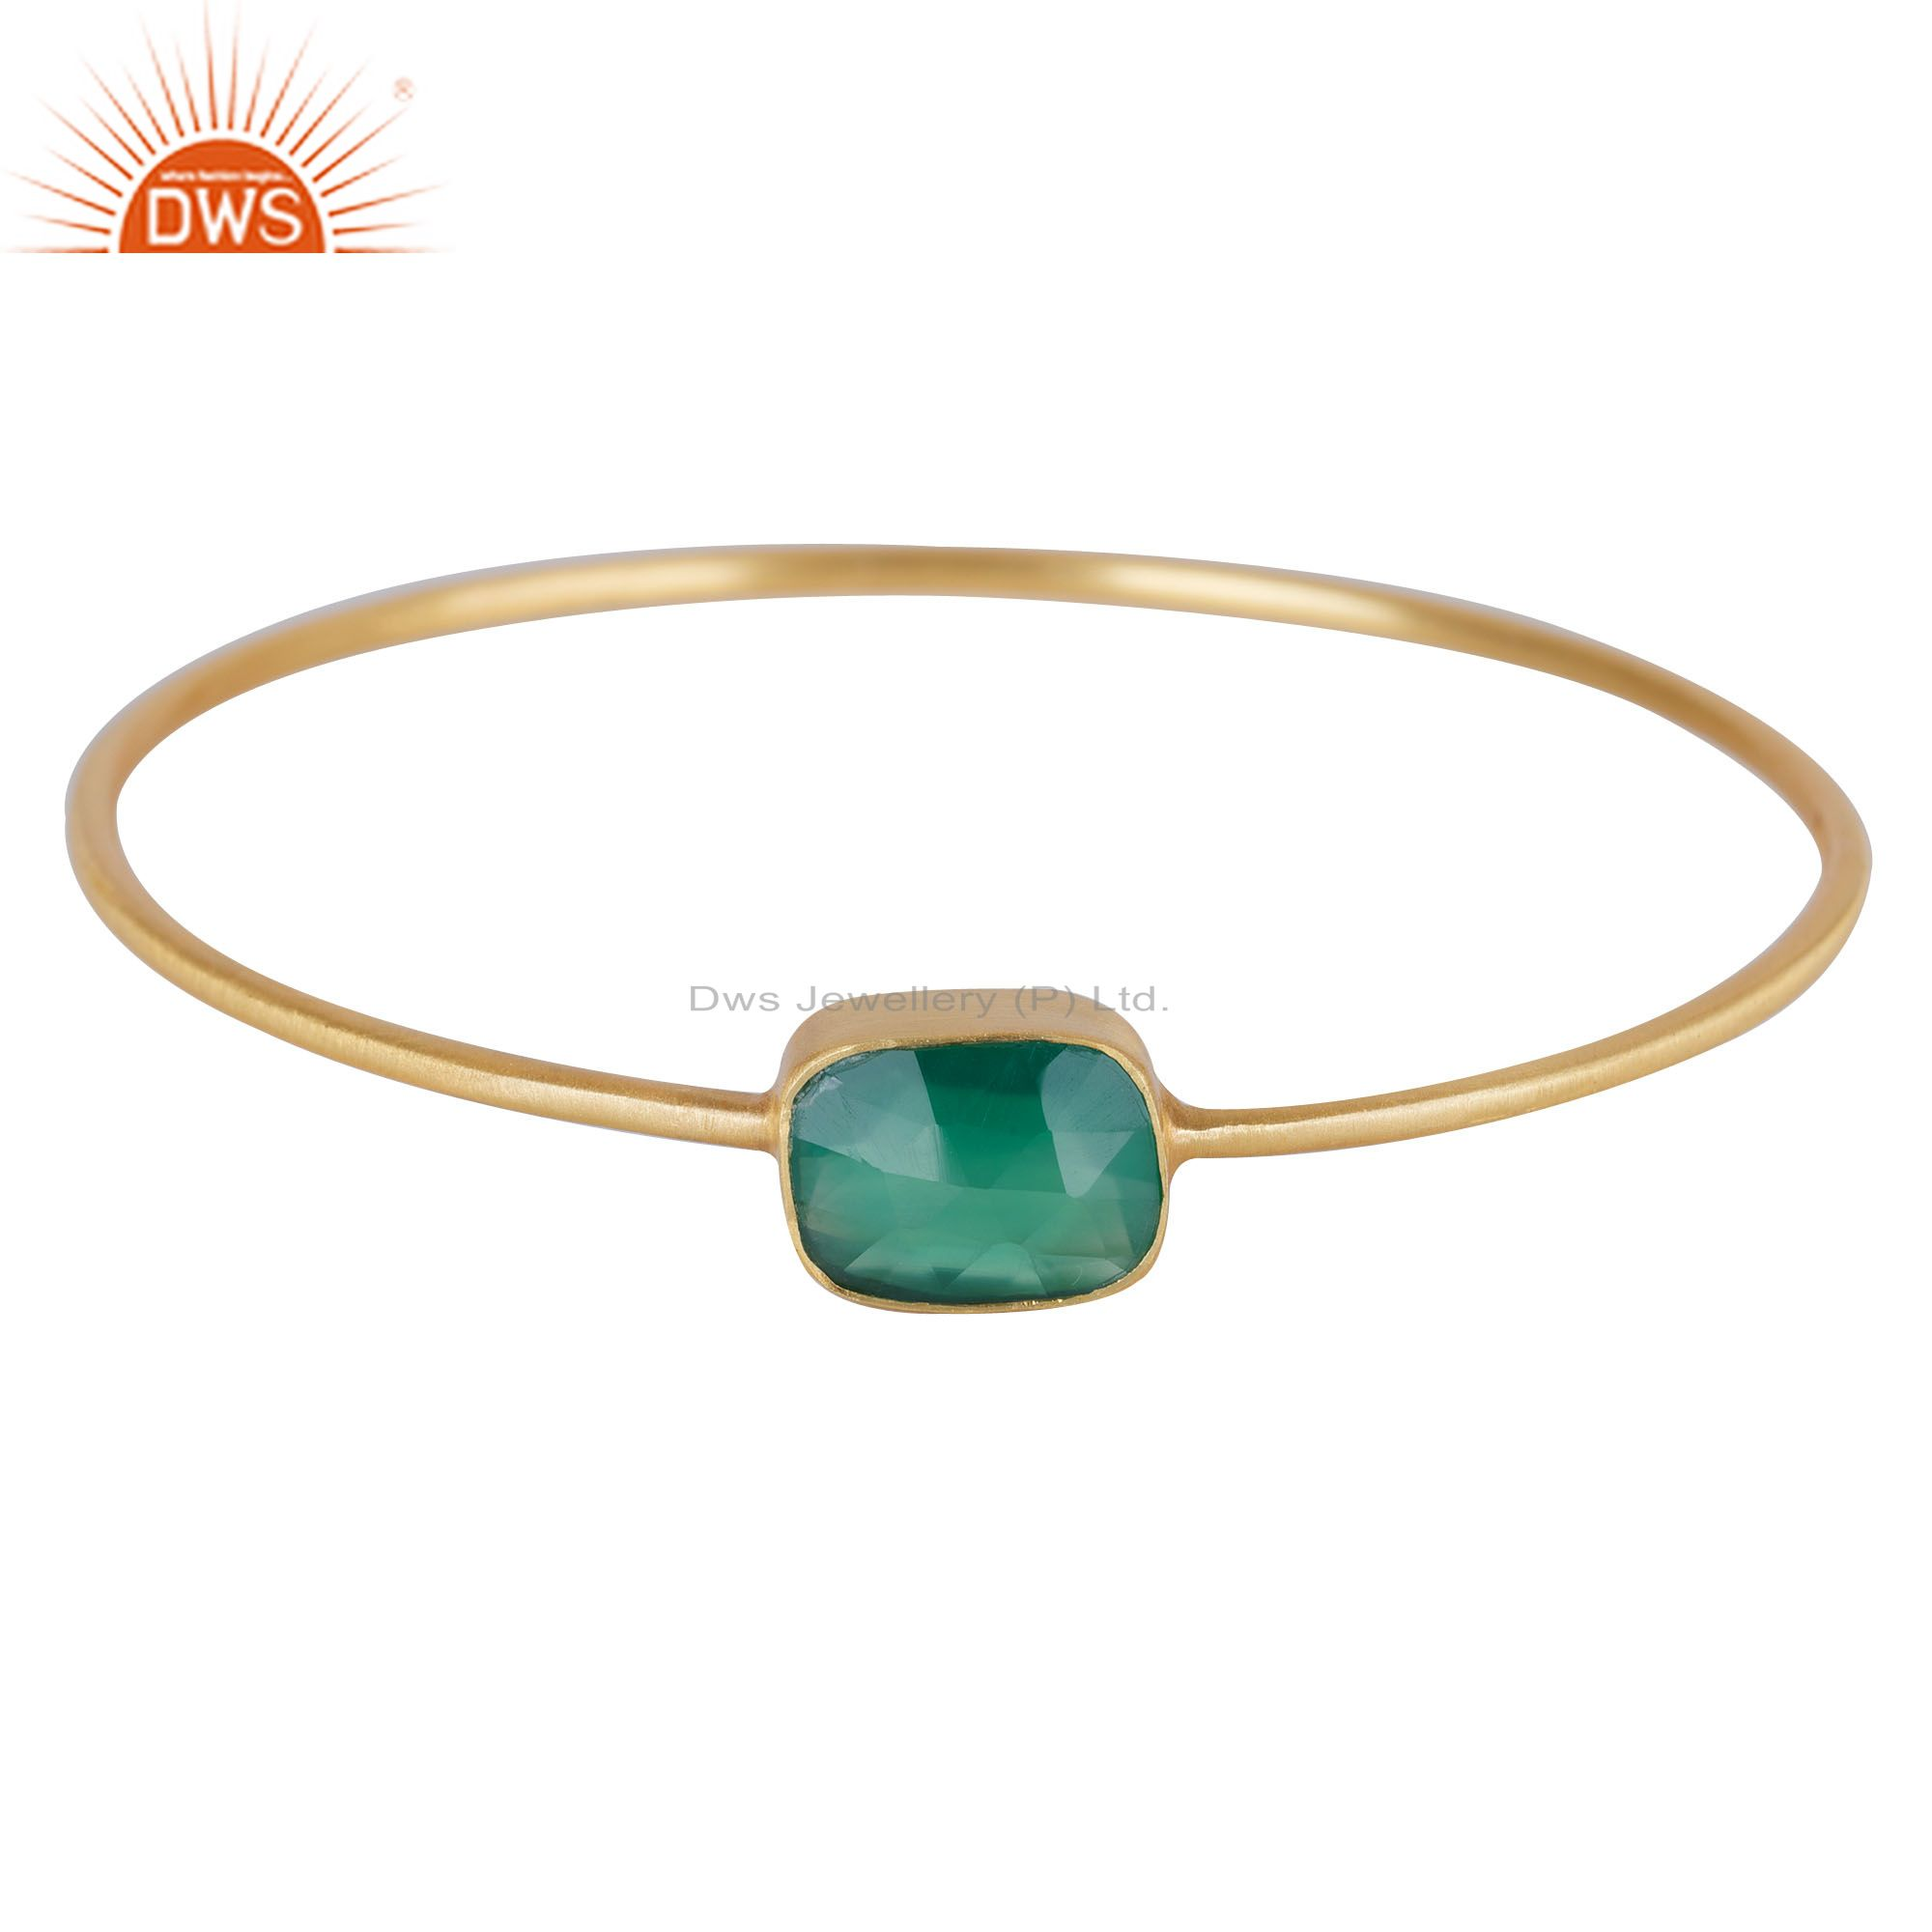 18K Yellow Gold Plated Sterling Silver Green Onyx Sleek Bangle